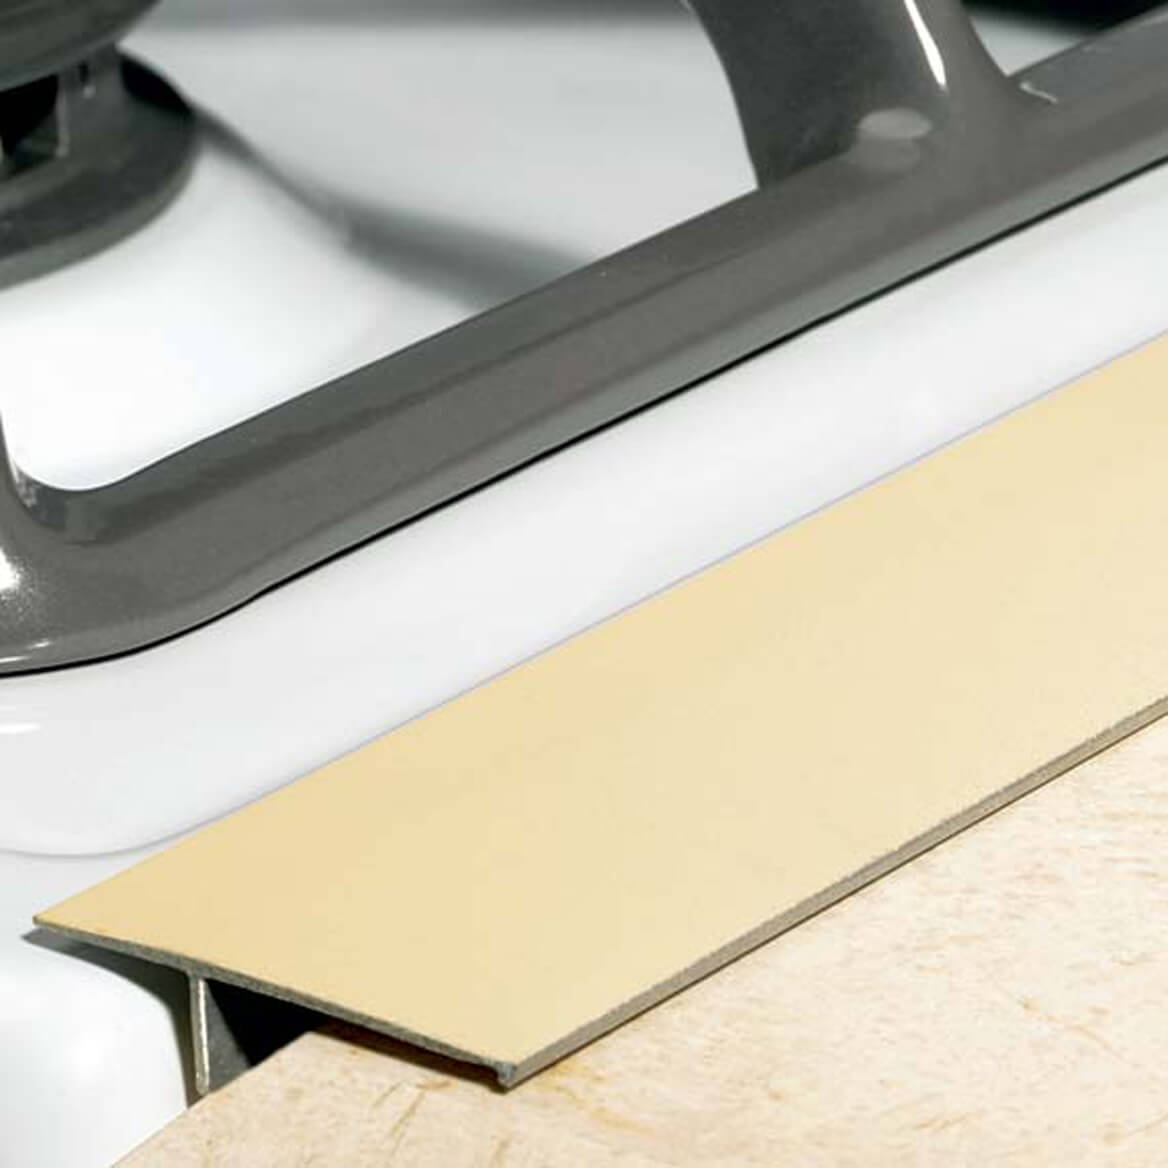 Gap Cap for Stovetops Metal Magnetic Miles Kimball Beige Strip Stove Counter Dishwasher Parts